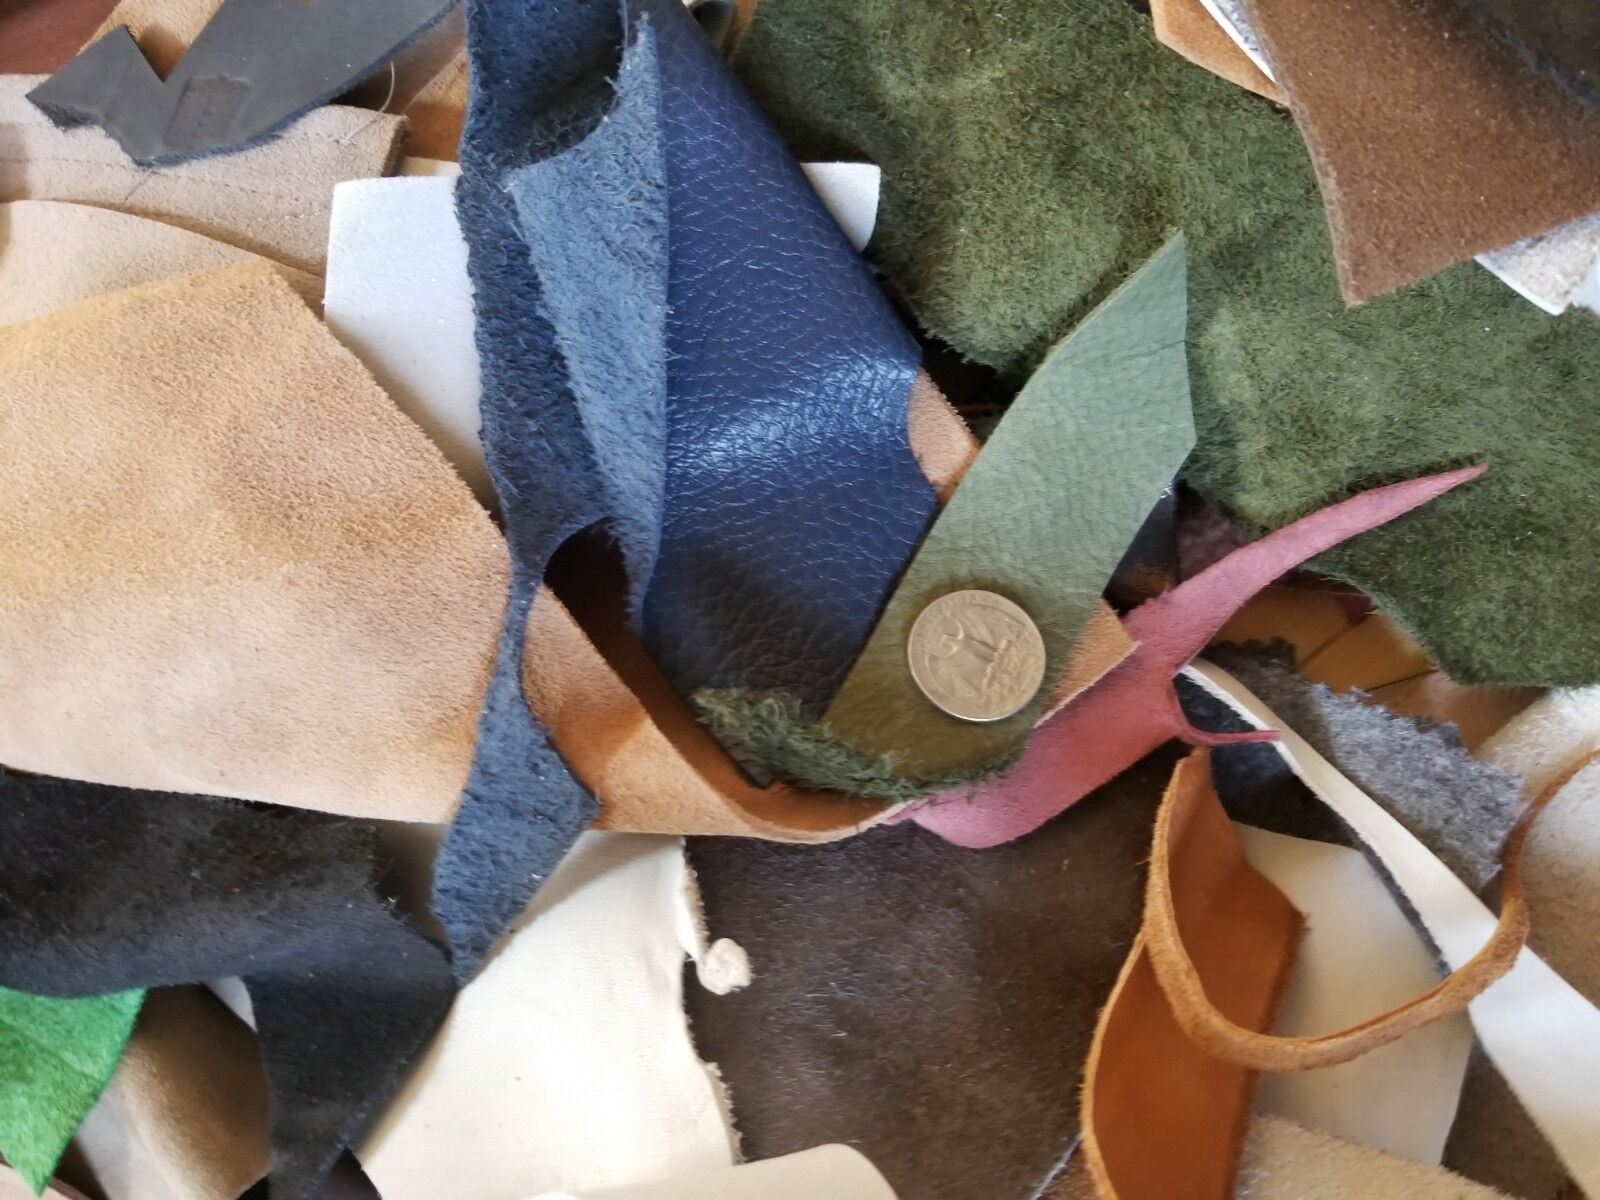 4 Pound Mixed Scrap Leather Suede Pieces Remnants, Various Colors Weights Size - $12.99